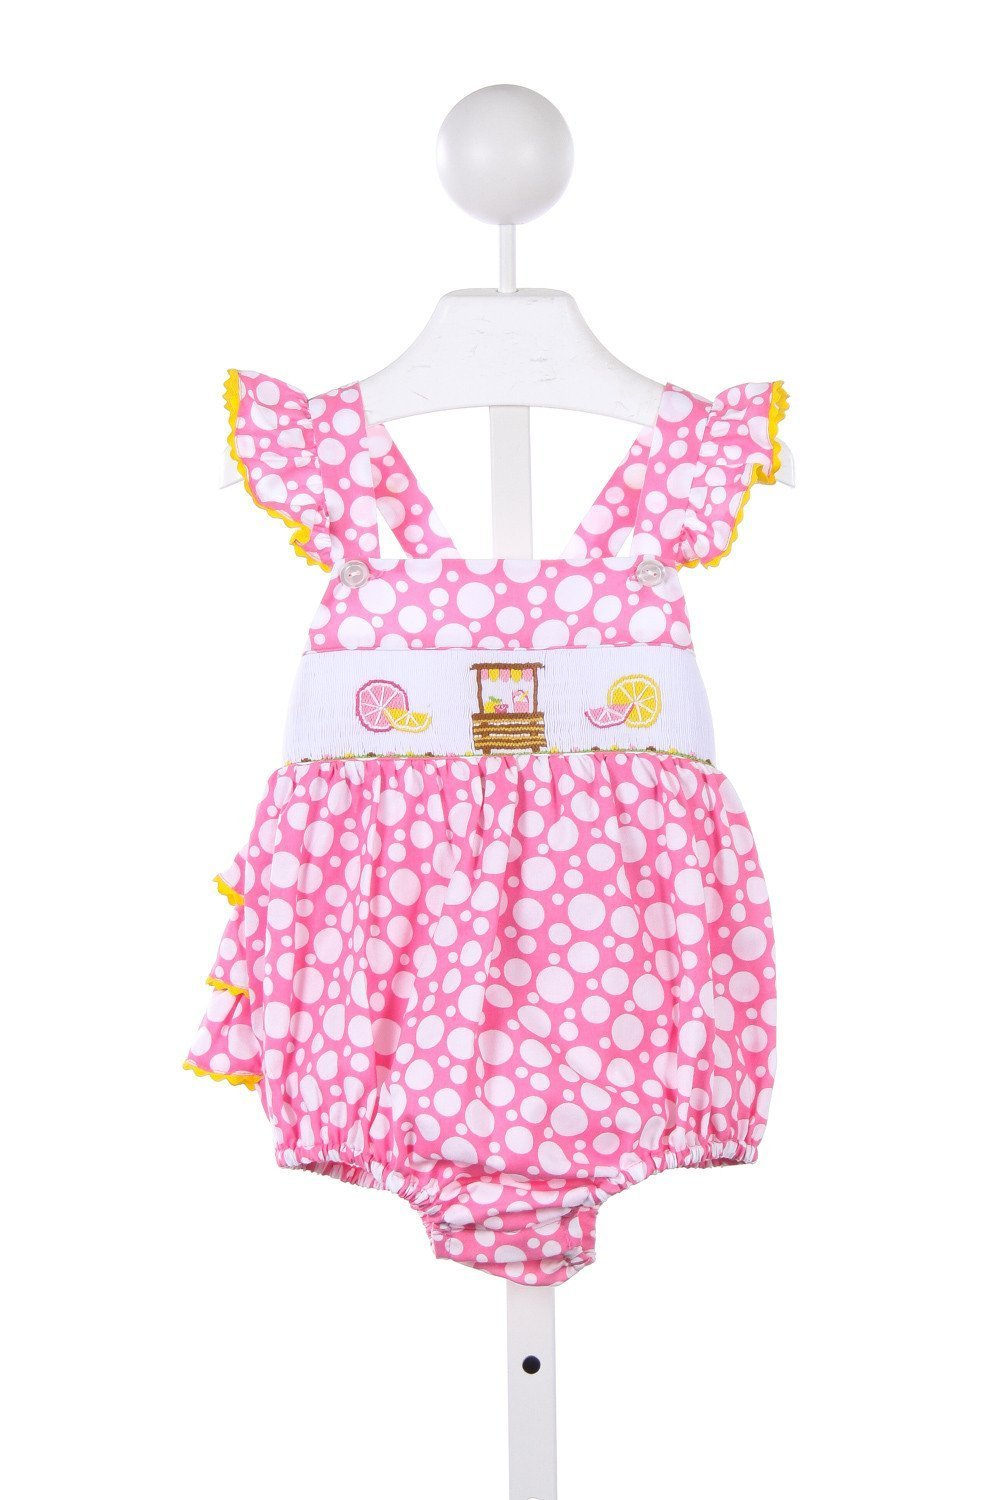 Southern Tots Pink And White Polka Dot Bubble With Smocked Lemonade Stand Very Faint Stain On Smocking